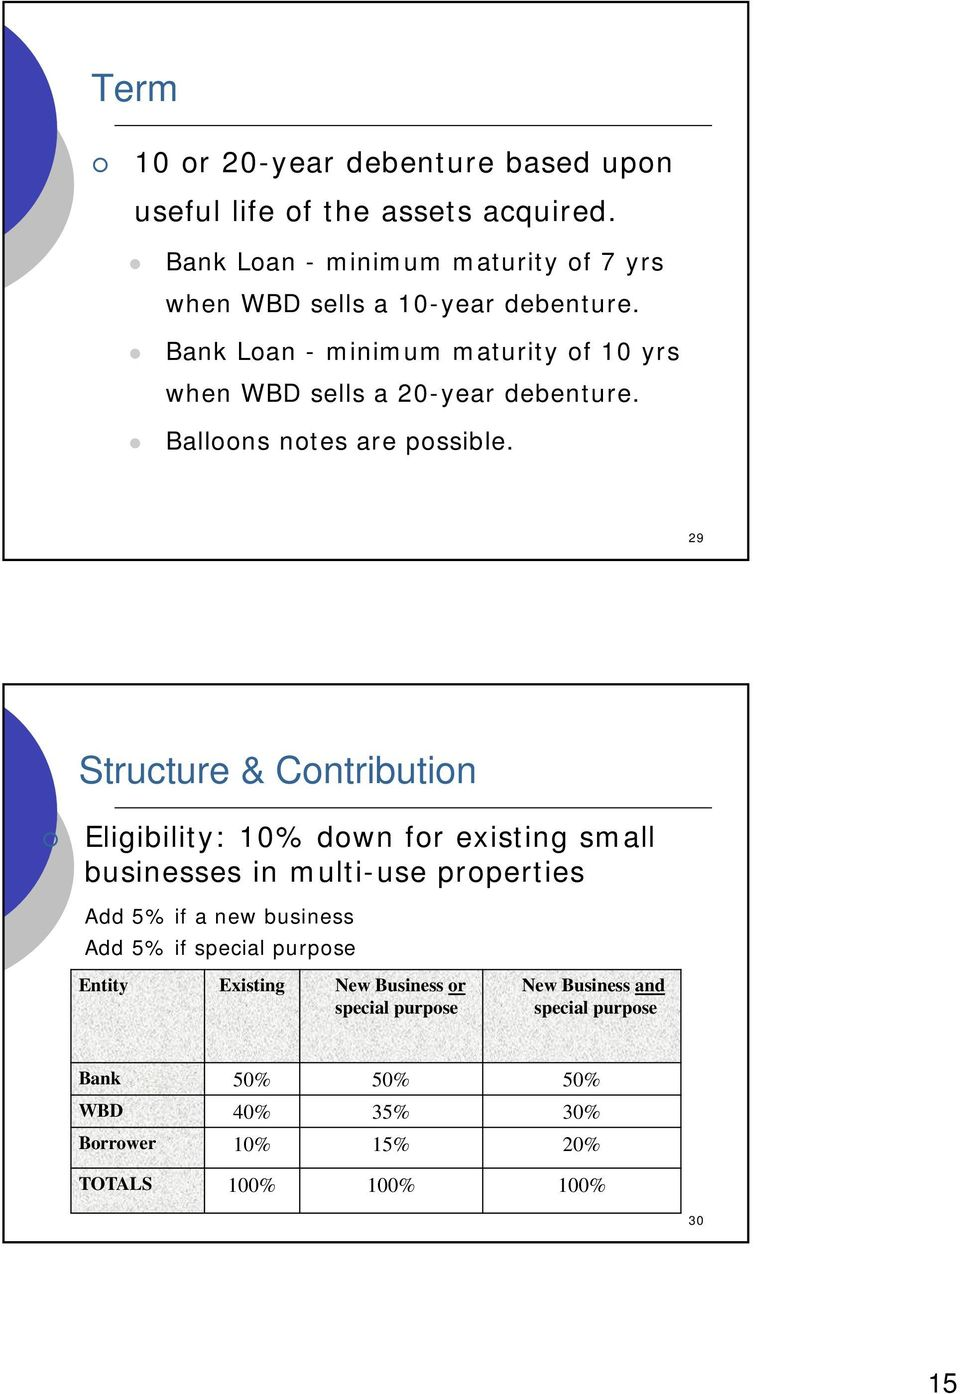 Bank Loan - minimum maturity of 10 yrs when WBD sells a 20-year debenture. Balloons notes are possible.